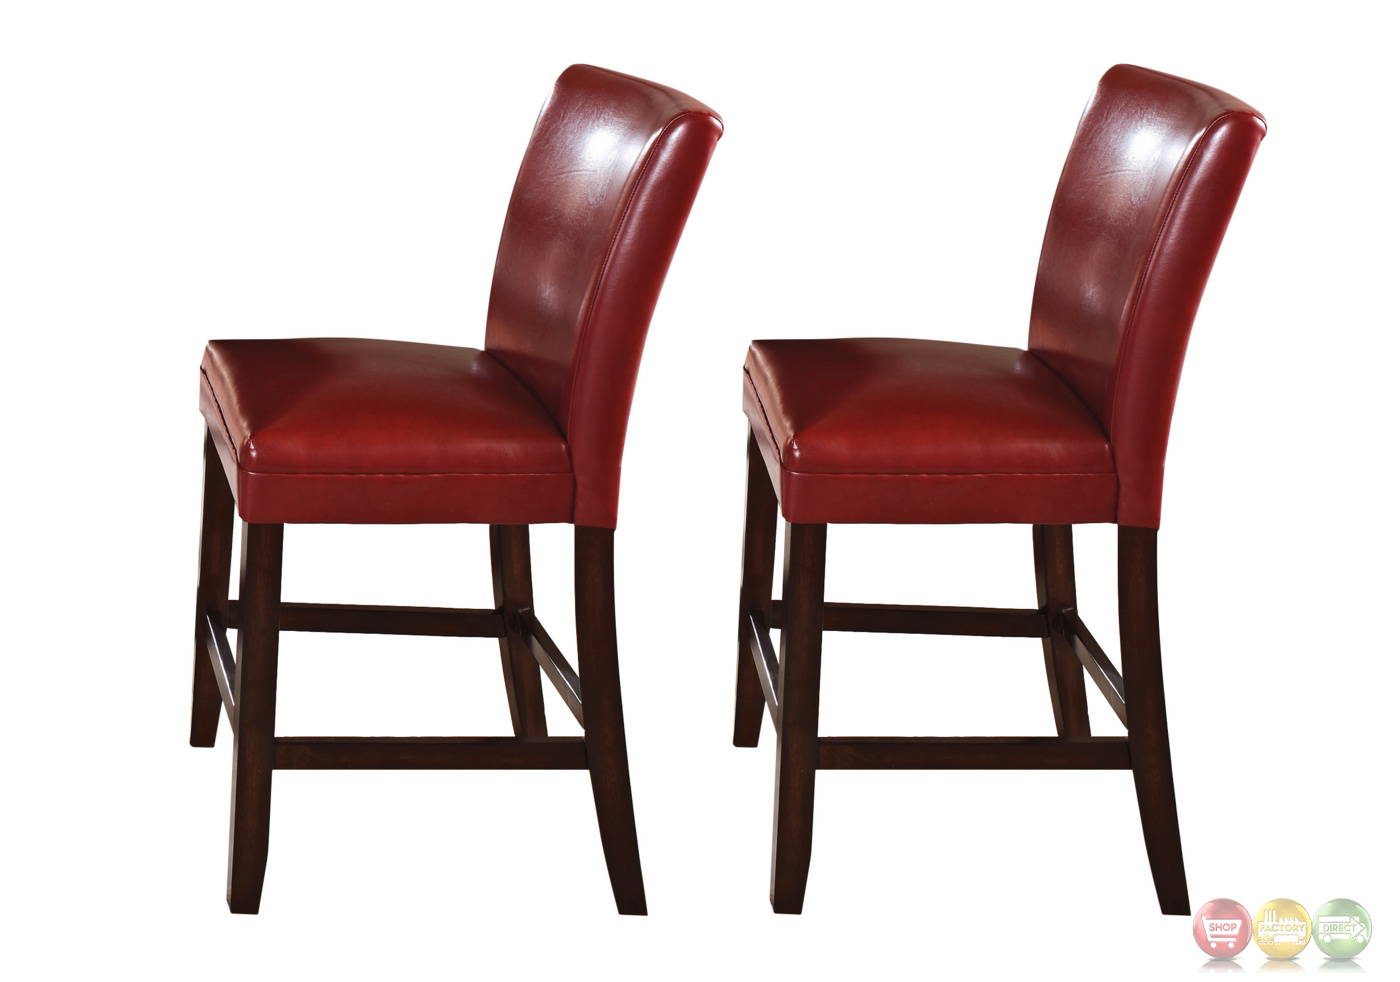 Set Of 2 Hartford Red Leather Upholstered Counter Height  : set of 2 hartford red leather upholstered counter height chair 1 from shopfactorydirect.com size 1400 x 982 jpeg 192kB